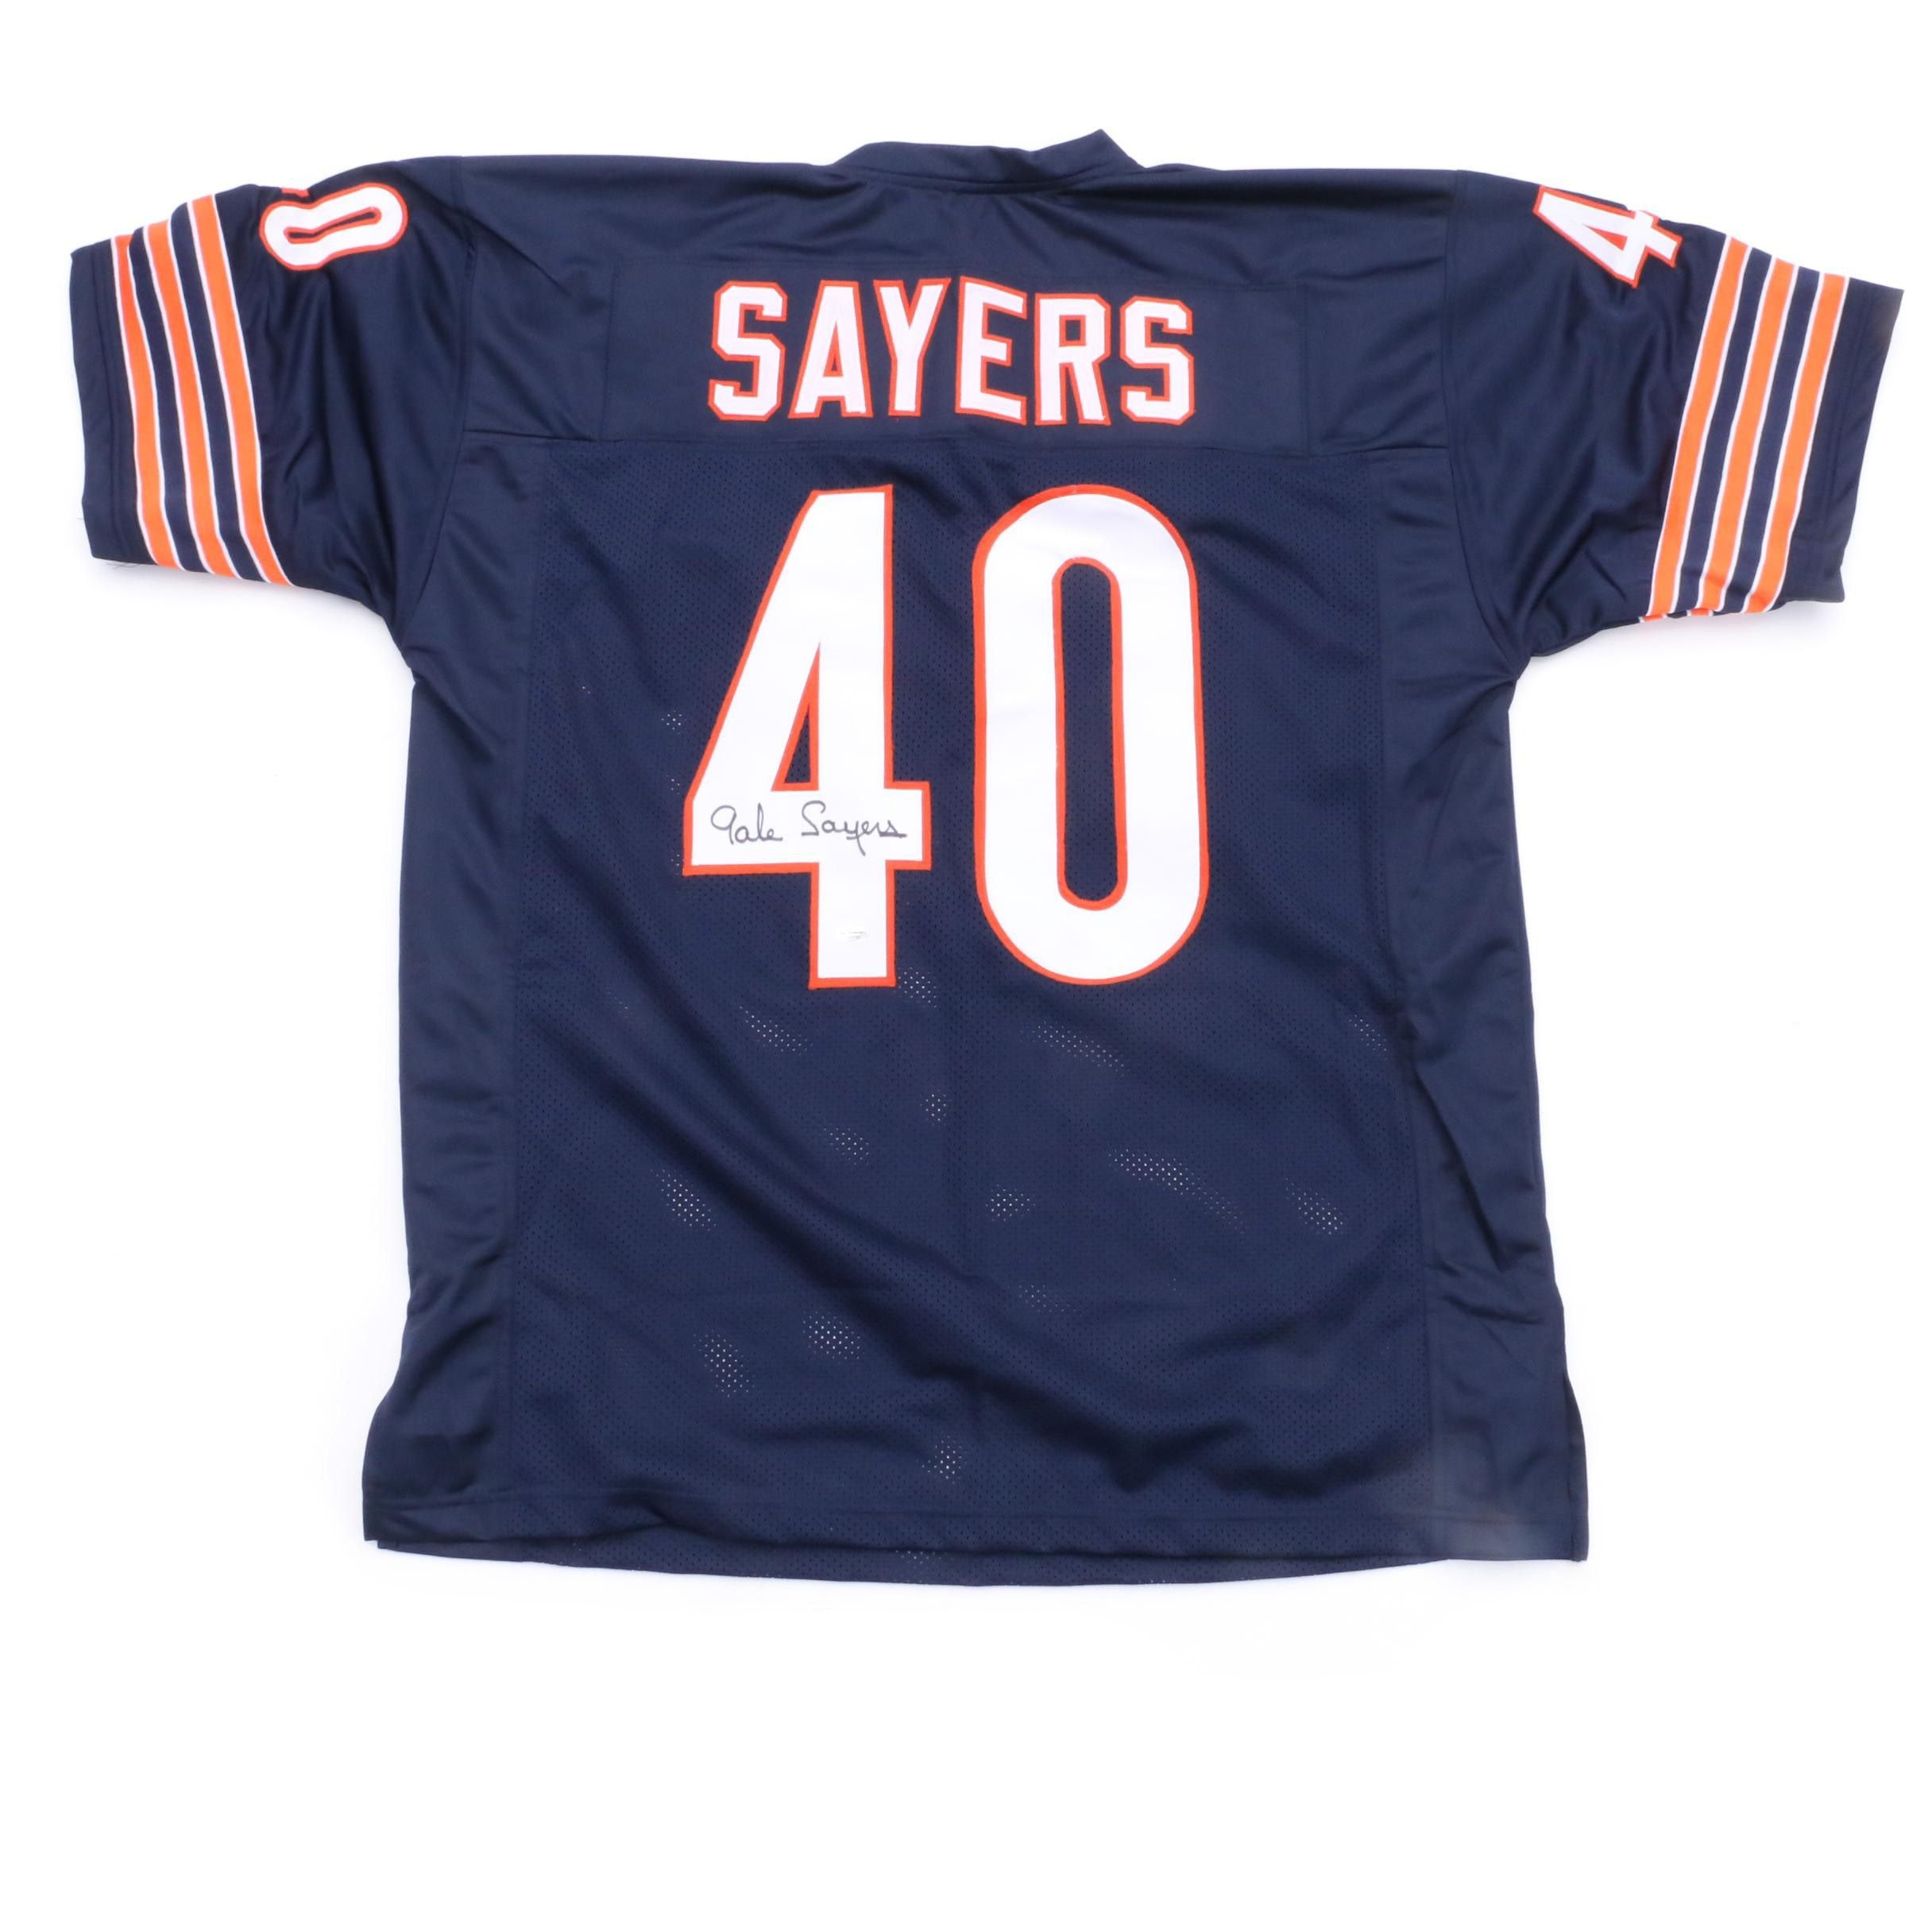 Gale Sayers Signed Jersey  COA